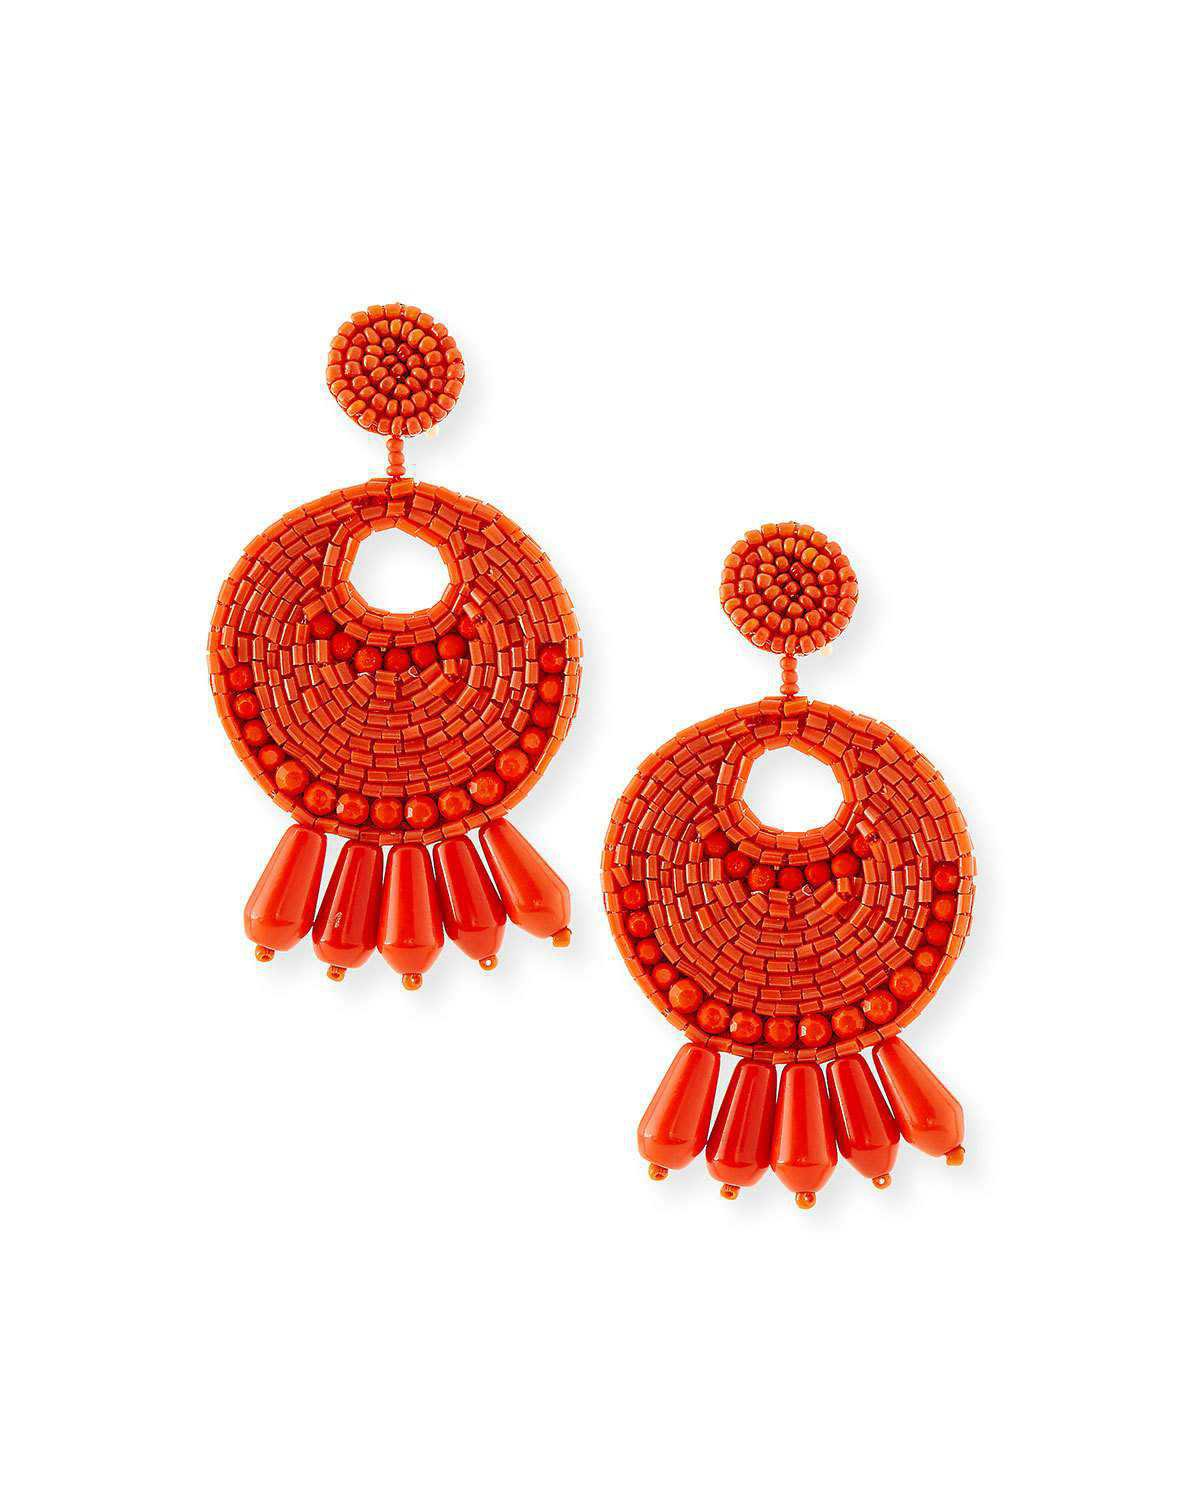 Kenneth Jay Lane Seed-Bead Tassel Clip Earrings, Coral | Neiman Marcus